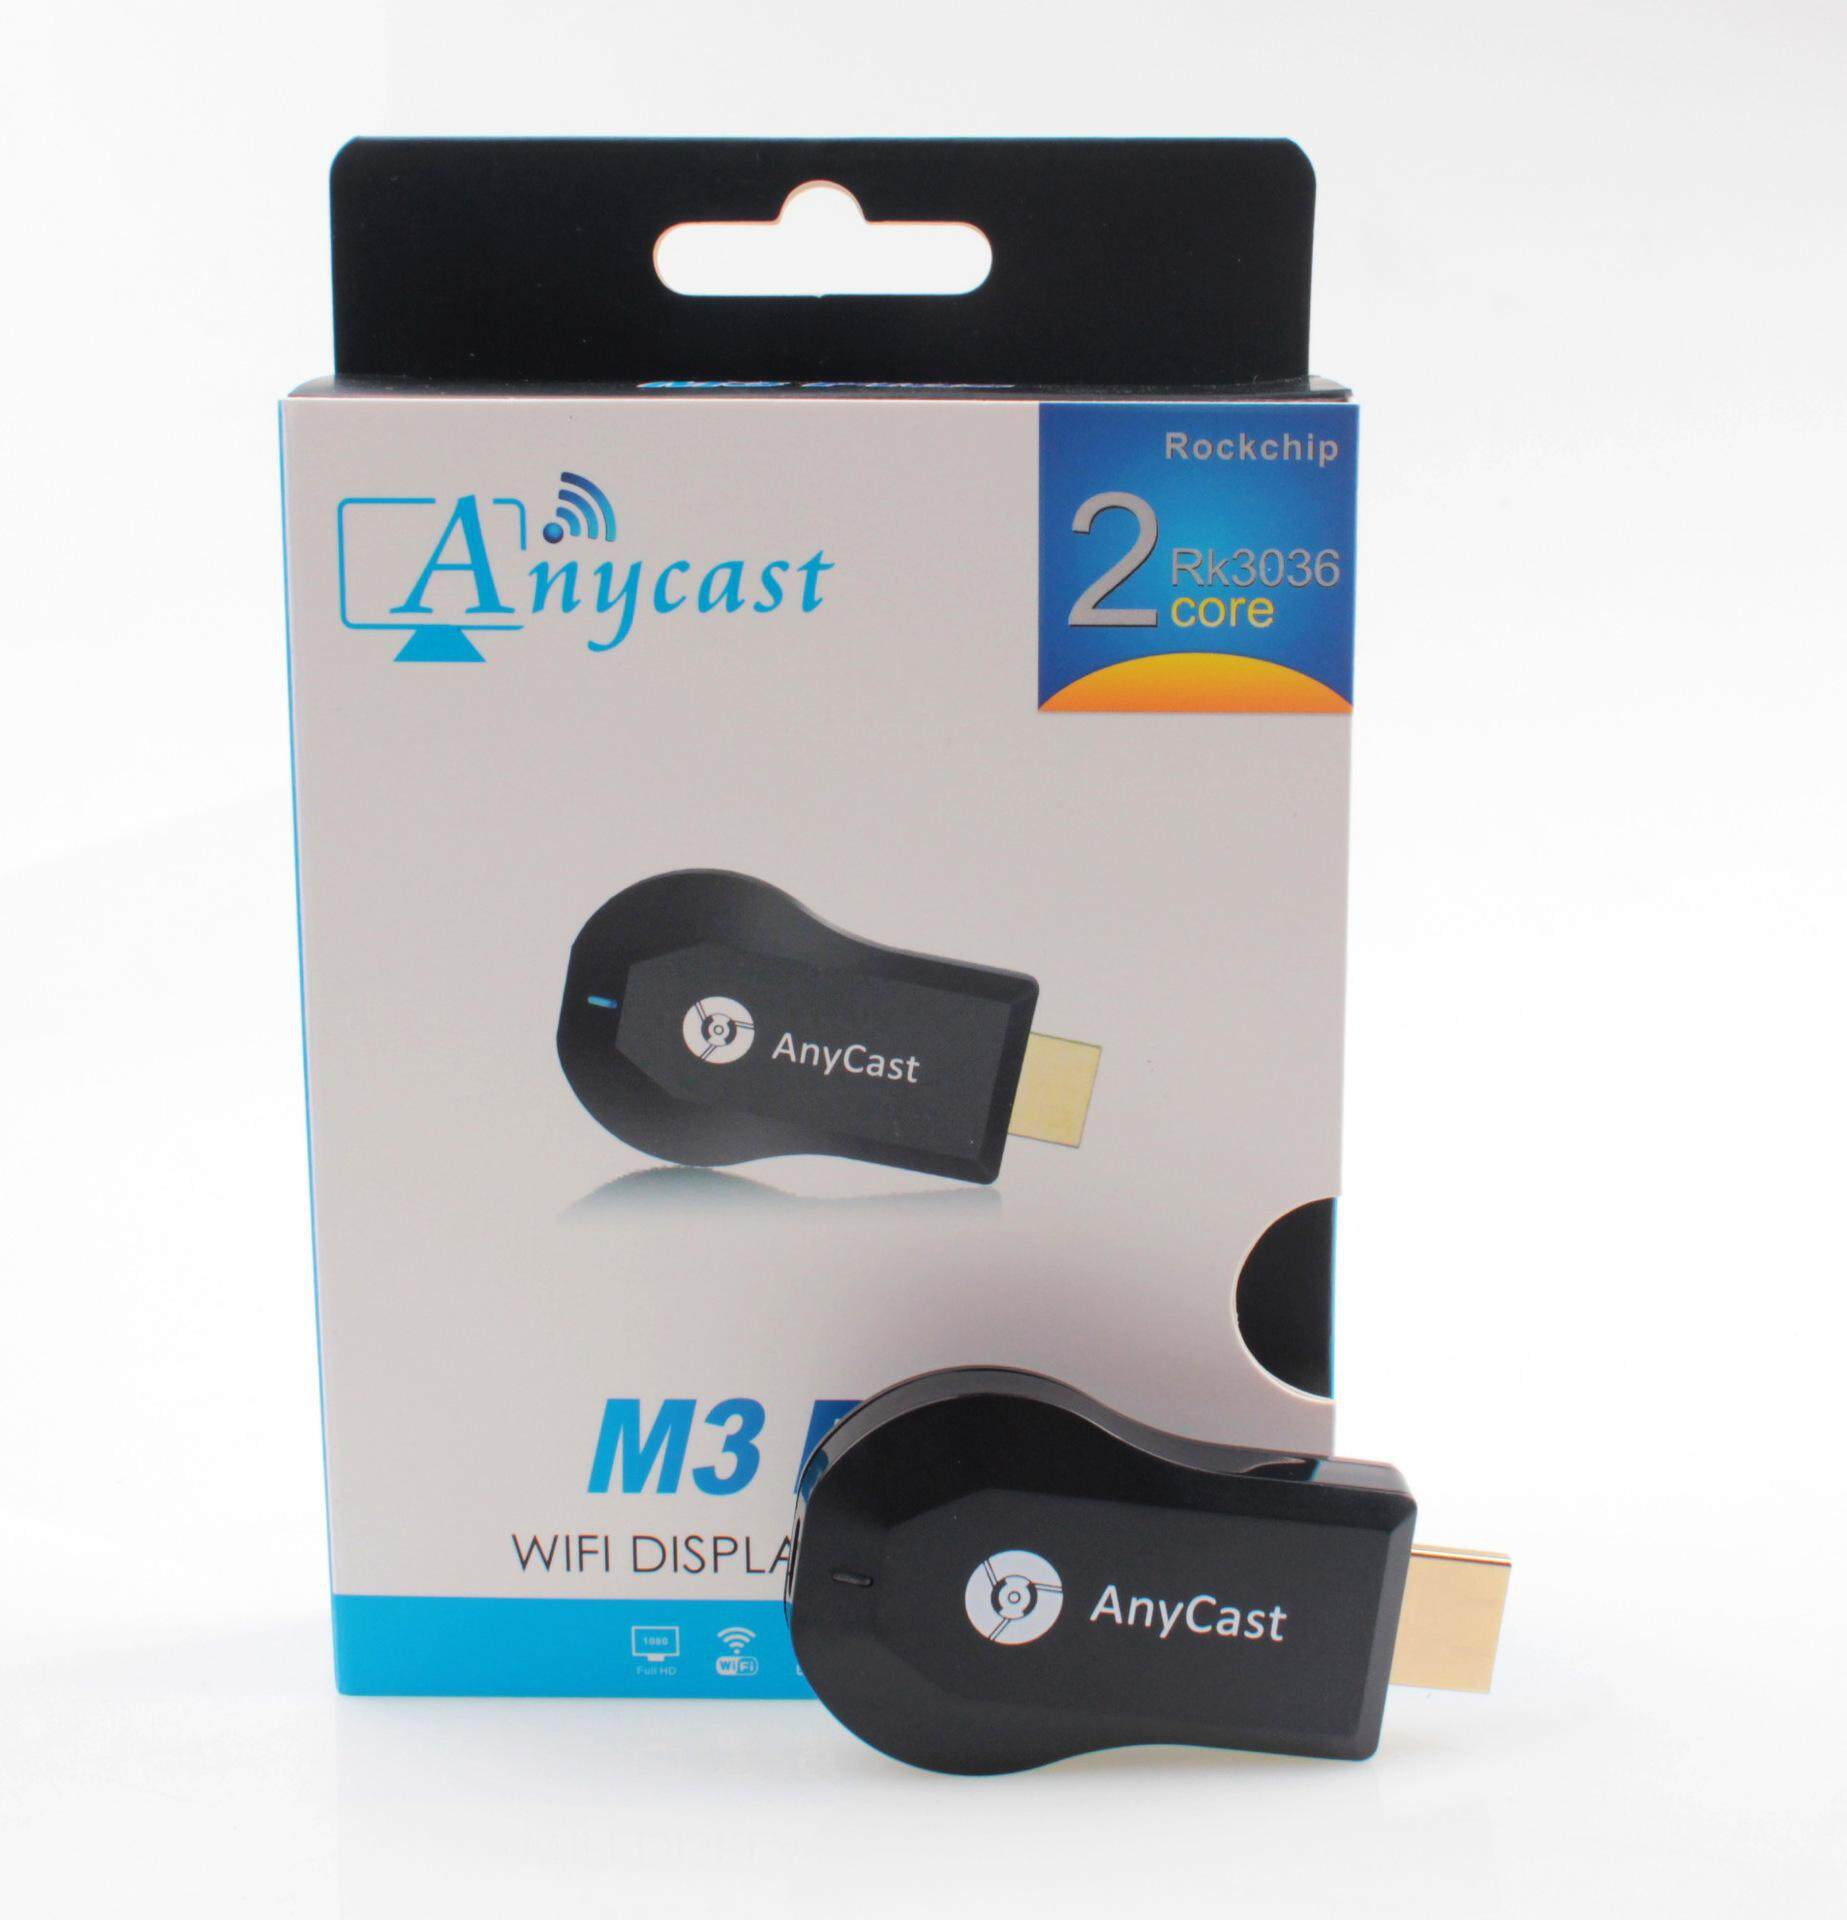 Fudun Anycast M3 Plus Ganda Inti H265 1080 P Airplay Miracast WiFi Tampilan Nirkabel Dongle (